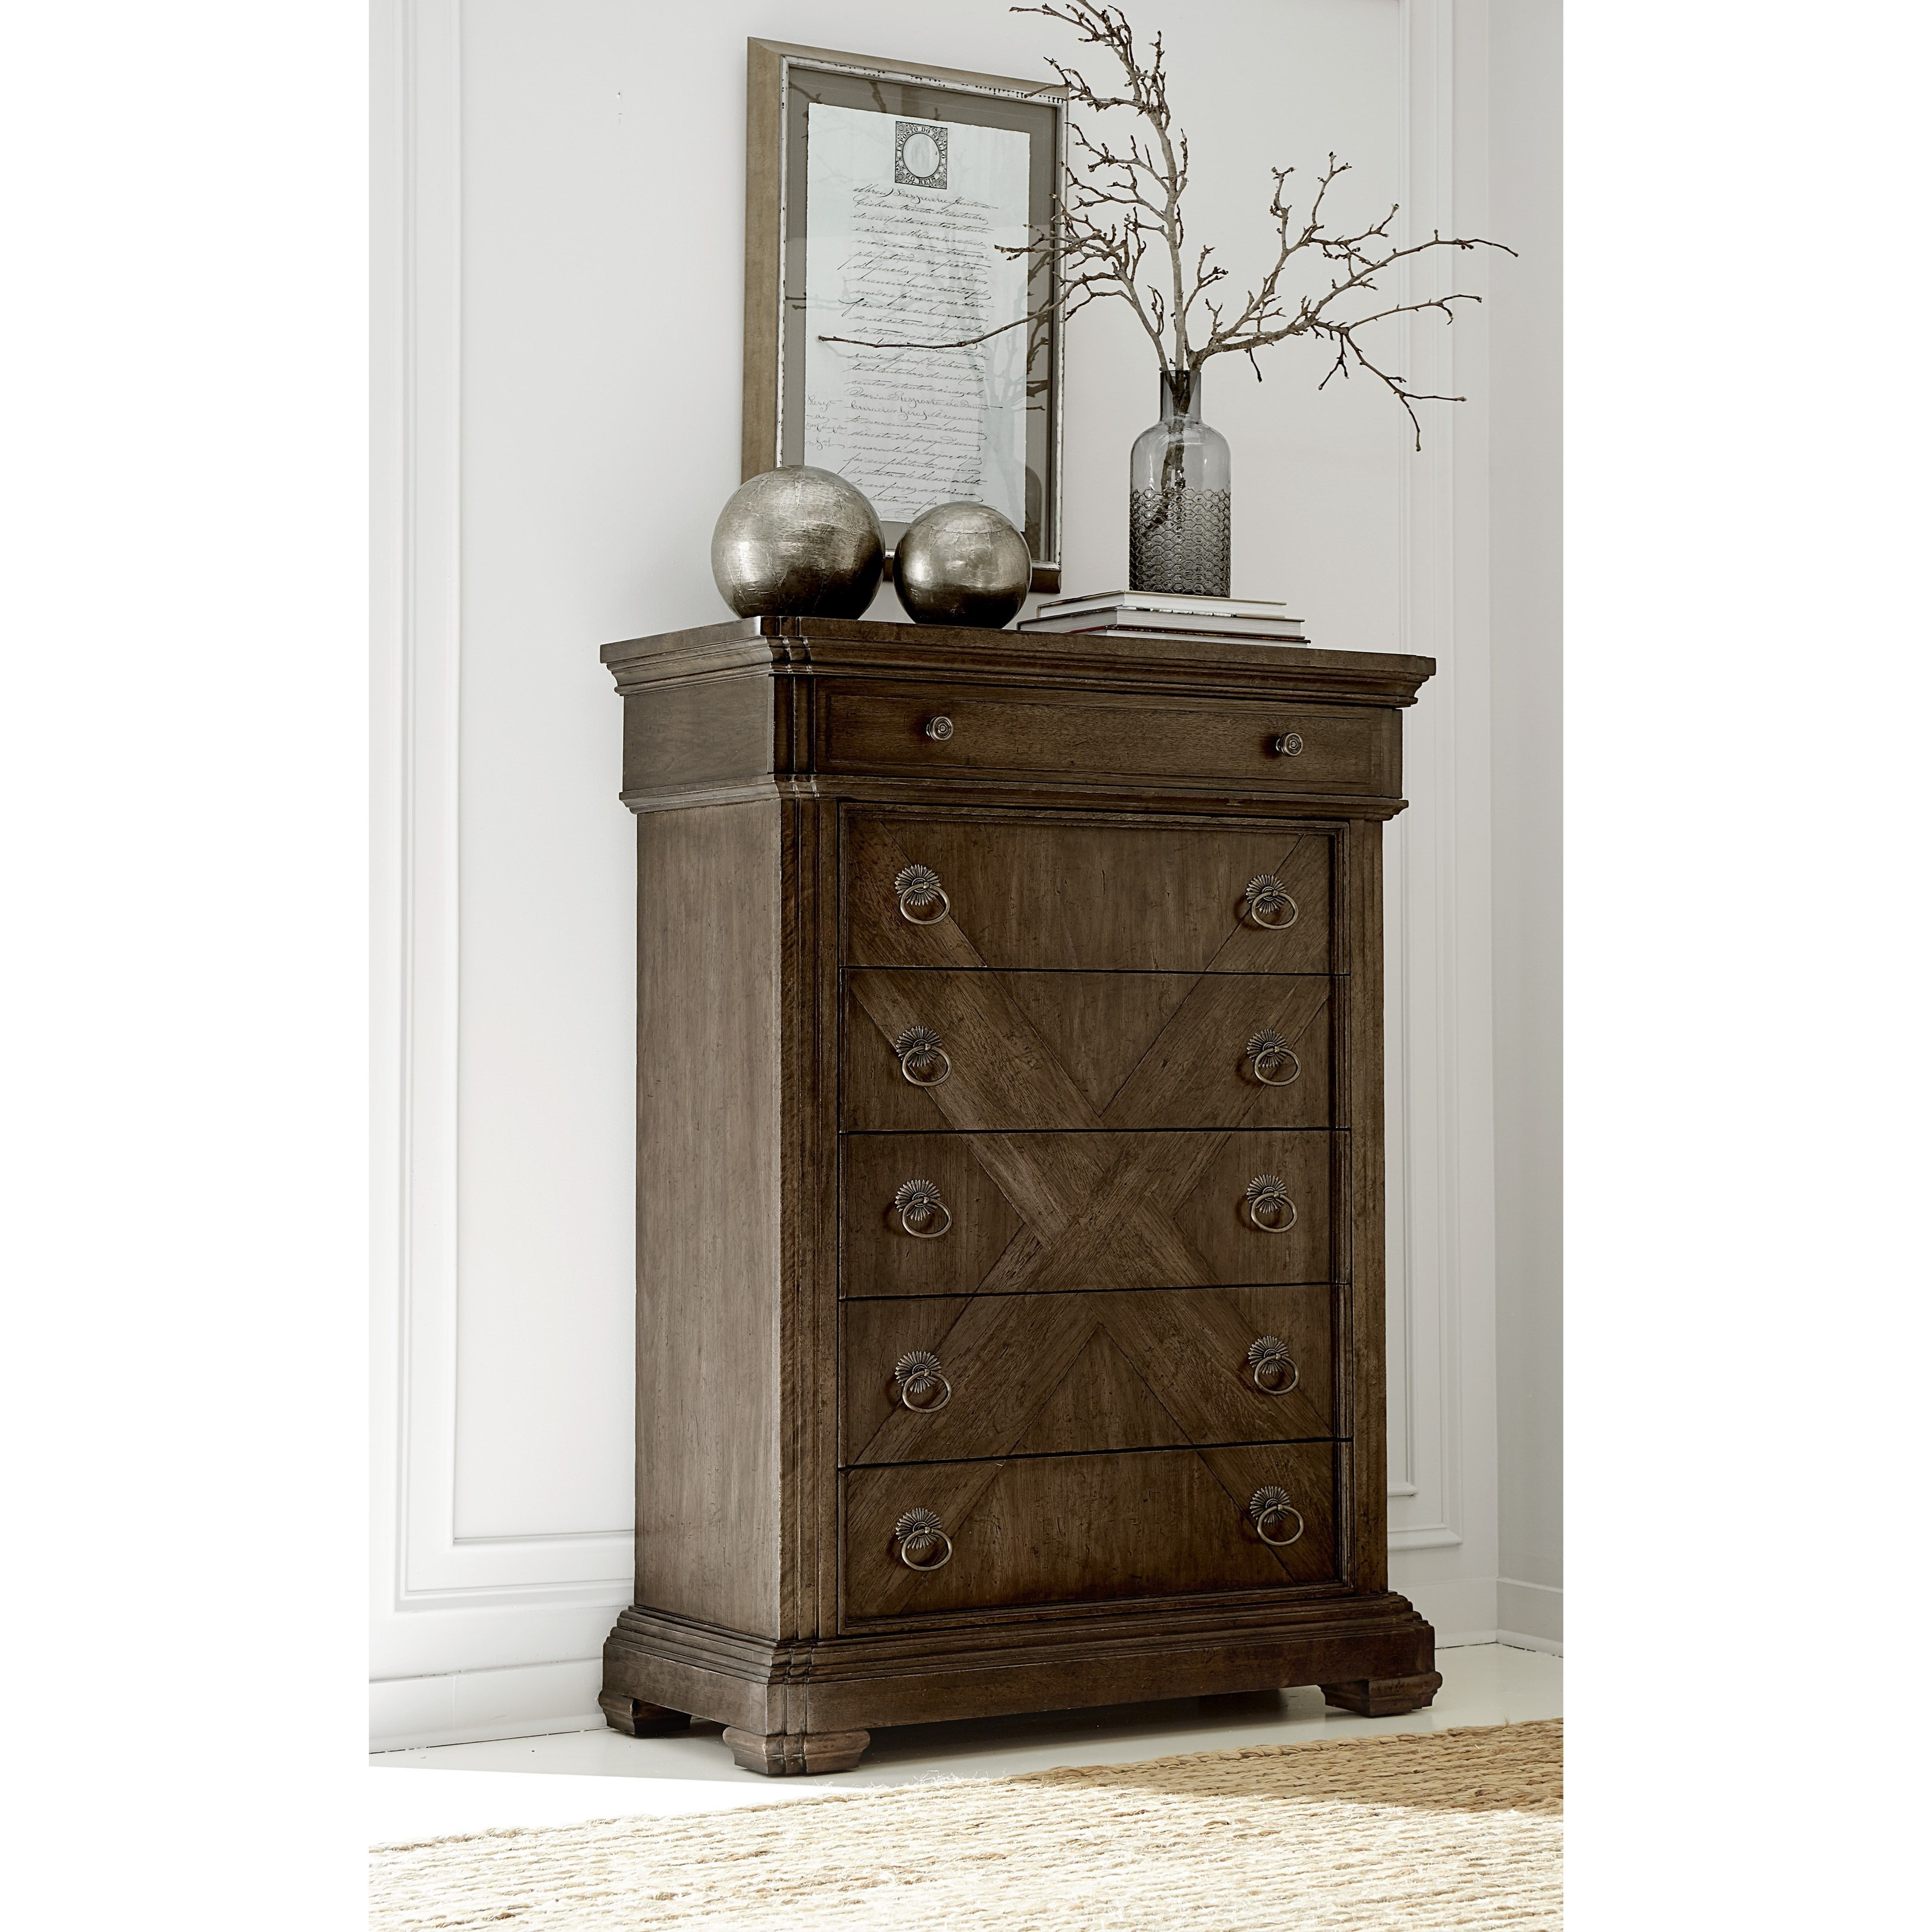 National Bedroom Furniture: A.R.T. Furniture Inc American Chapter 247150-2912 Grand